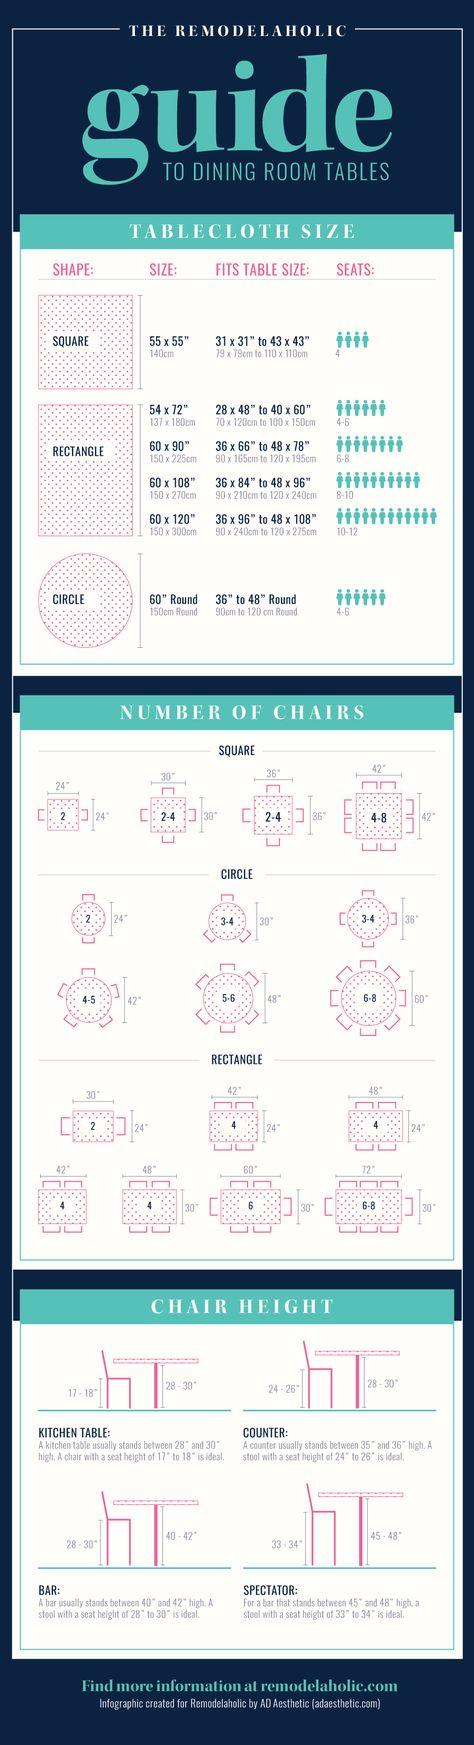 Remodelaholic | The Remodelaholic Guide to Dining Table Sizes: Seating, Tablecloth Size, and Chair Height